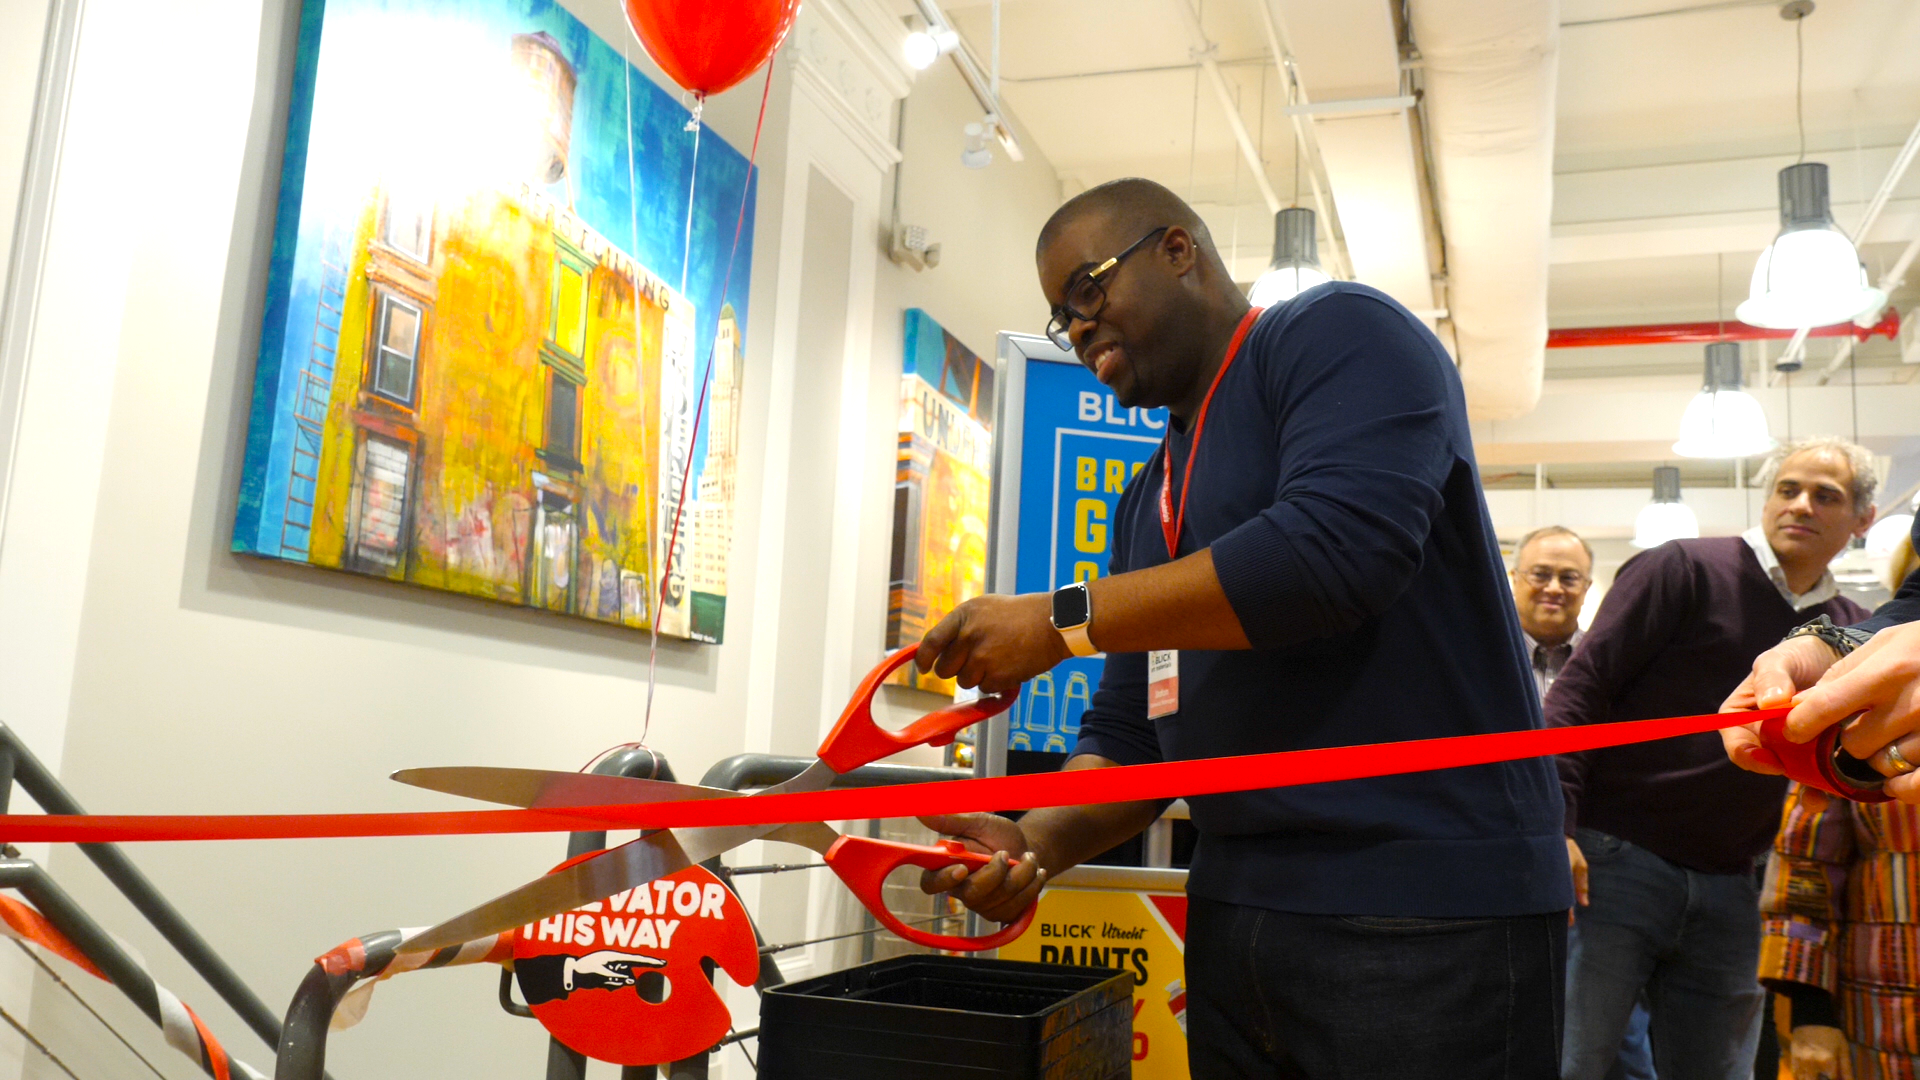 Stafon Nelson, general manager, had the honor to cut the ceremonial ribbon. Photo courtesy Blick